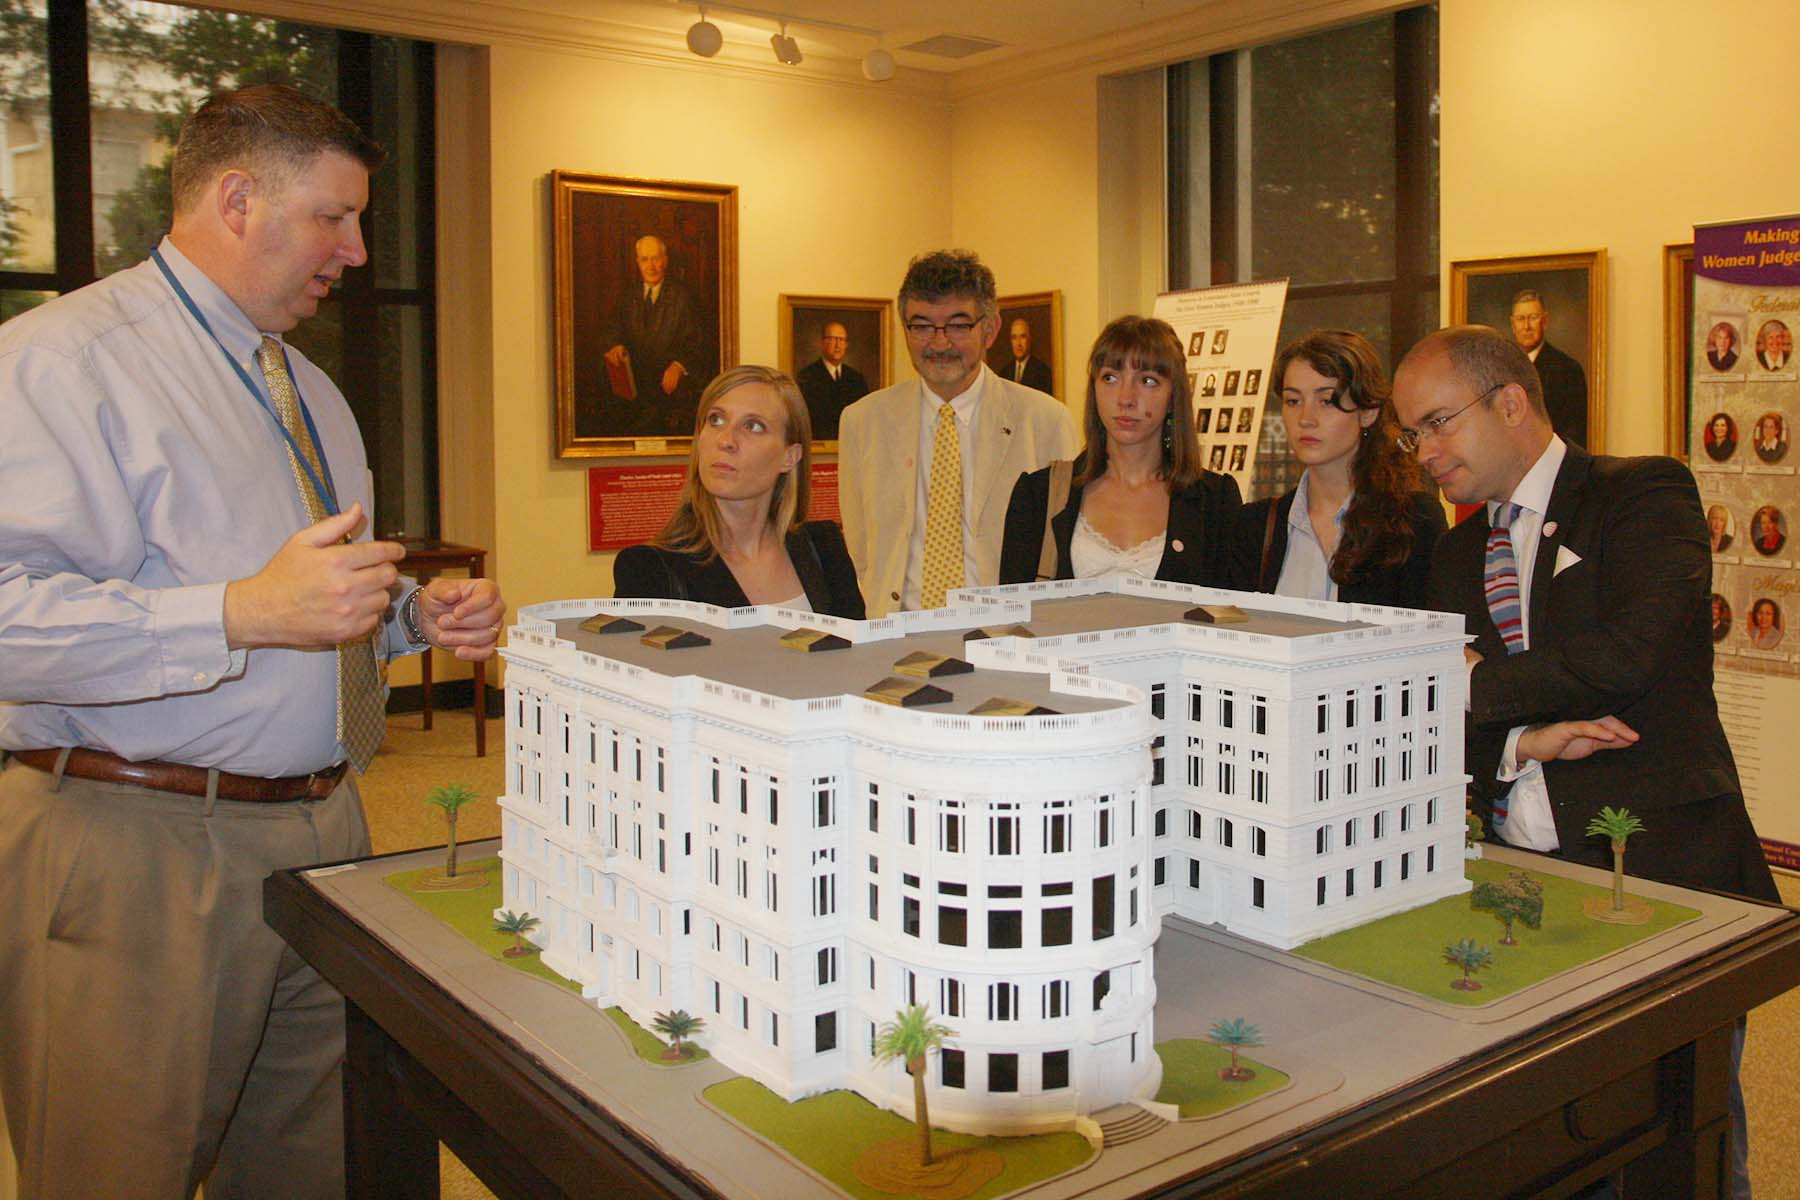 French students tour the Supreme Court Building which included the viewing of a model of the Supreme Court Building.